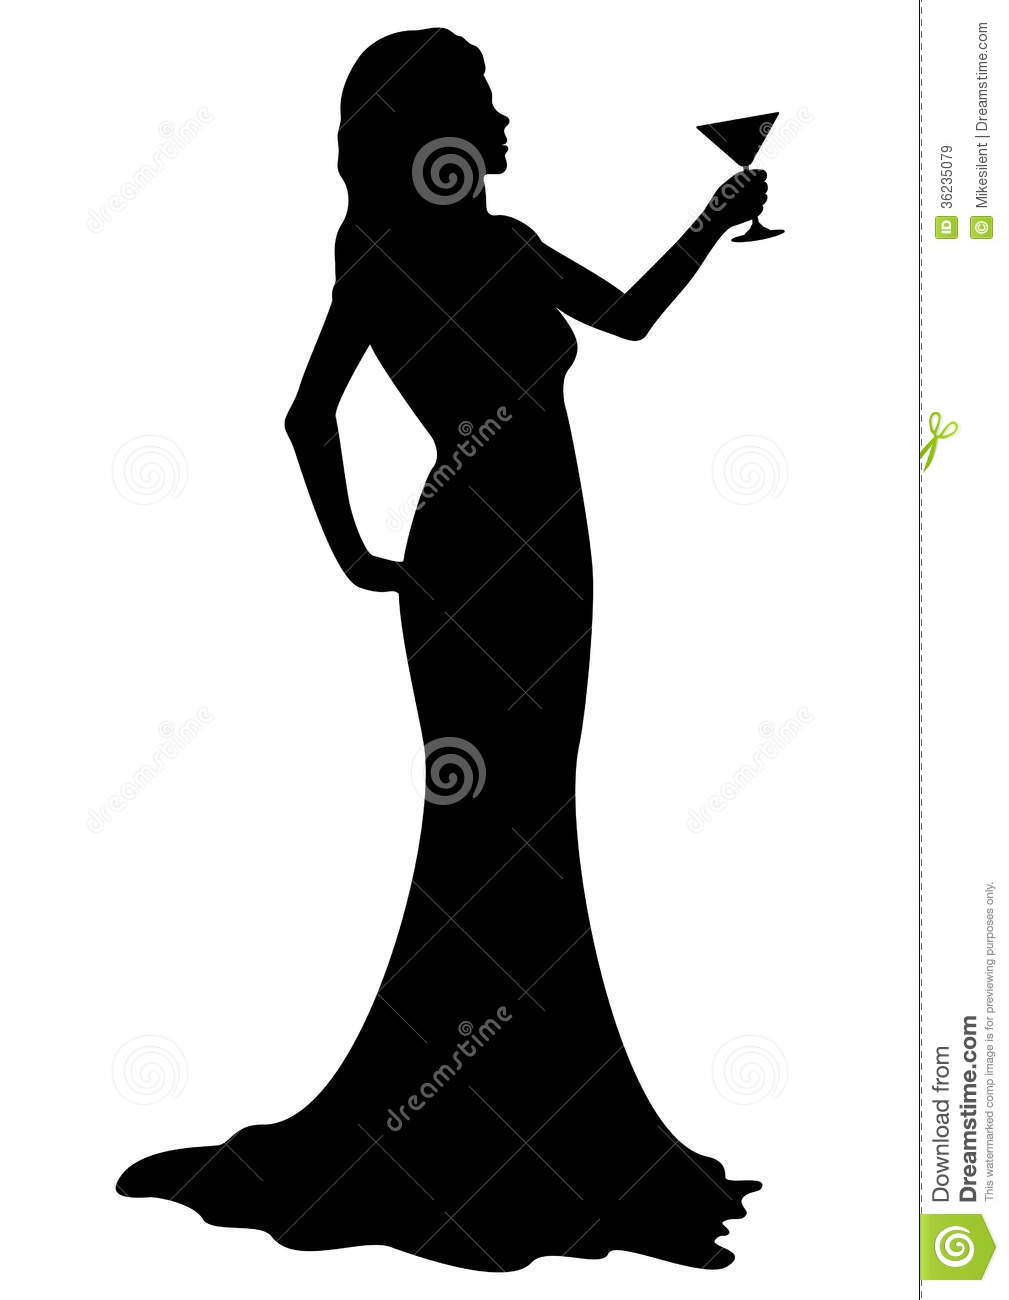 Silhouette girl with cocktail glass.